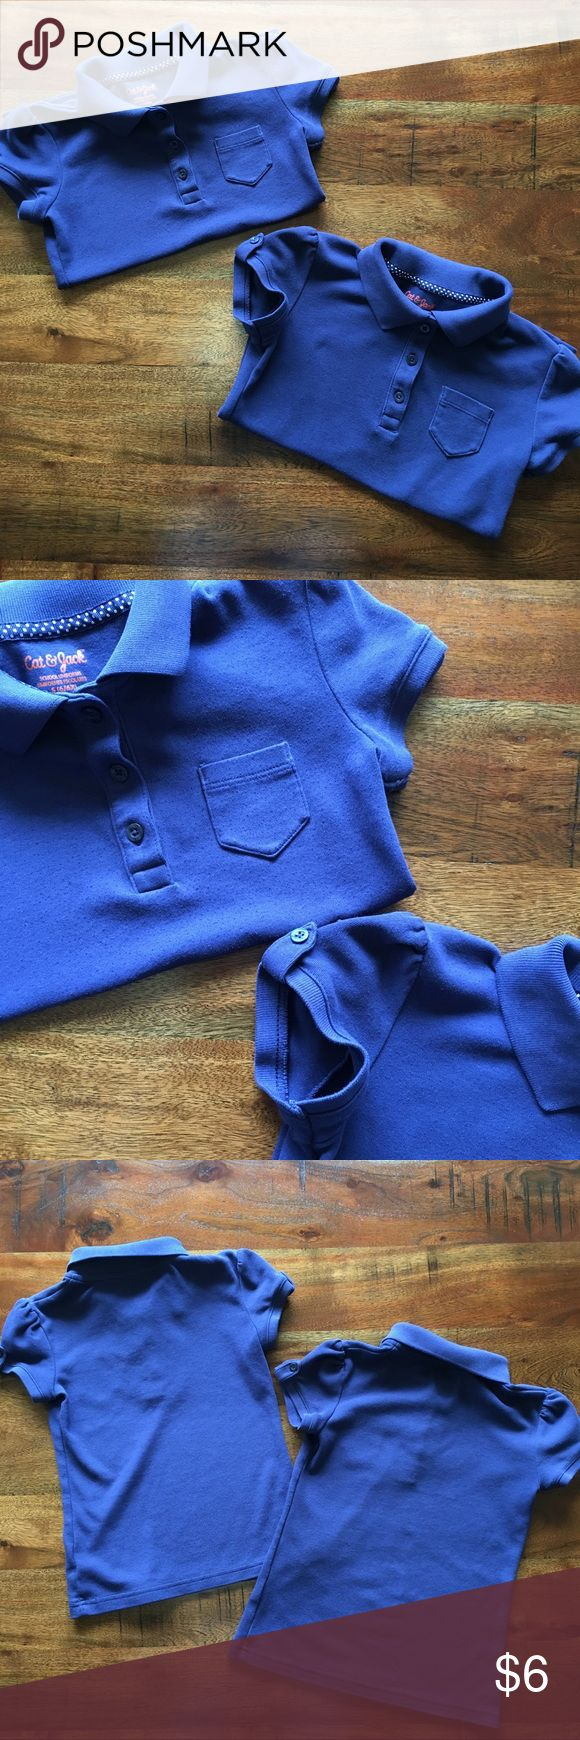 2️⃣ Bundle Girls School Uniform Polo Shirts Get this 2 bundle set of Cat & Jack girls school uniform polos in size 6-6X. The polos do having pilling due to wear. It's a soft material with adorable detail as seen above. In decent condition. Cat & Jack Shirts & Tops Polos